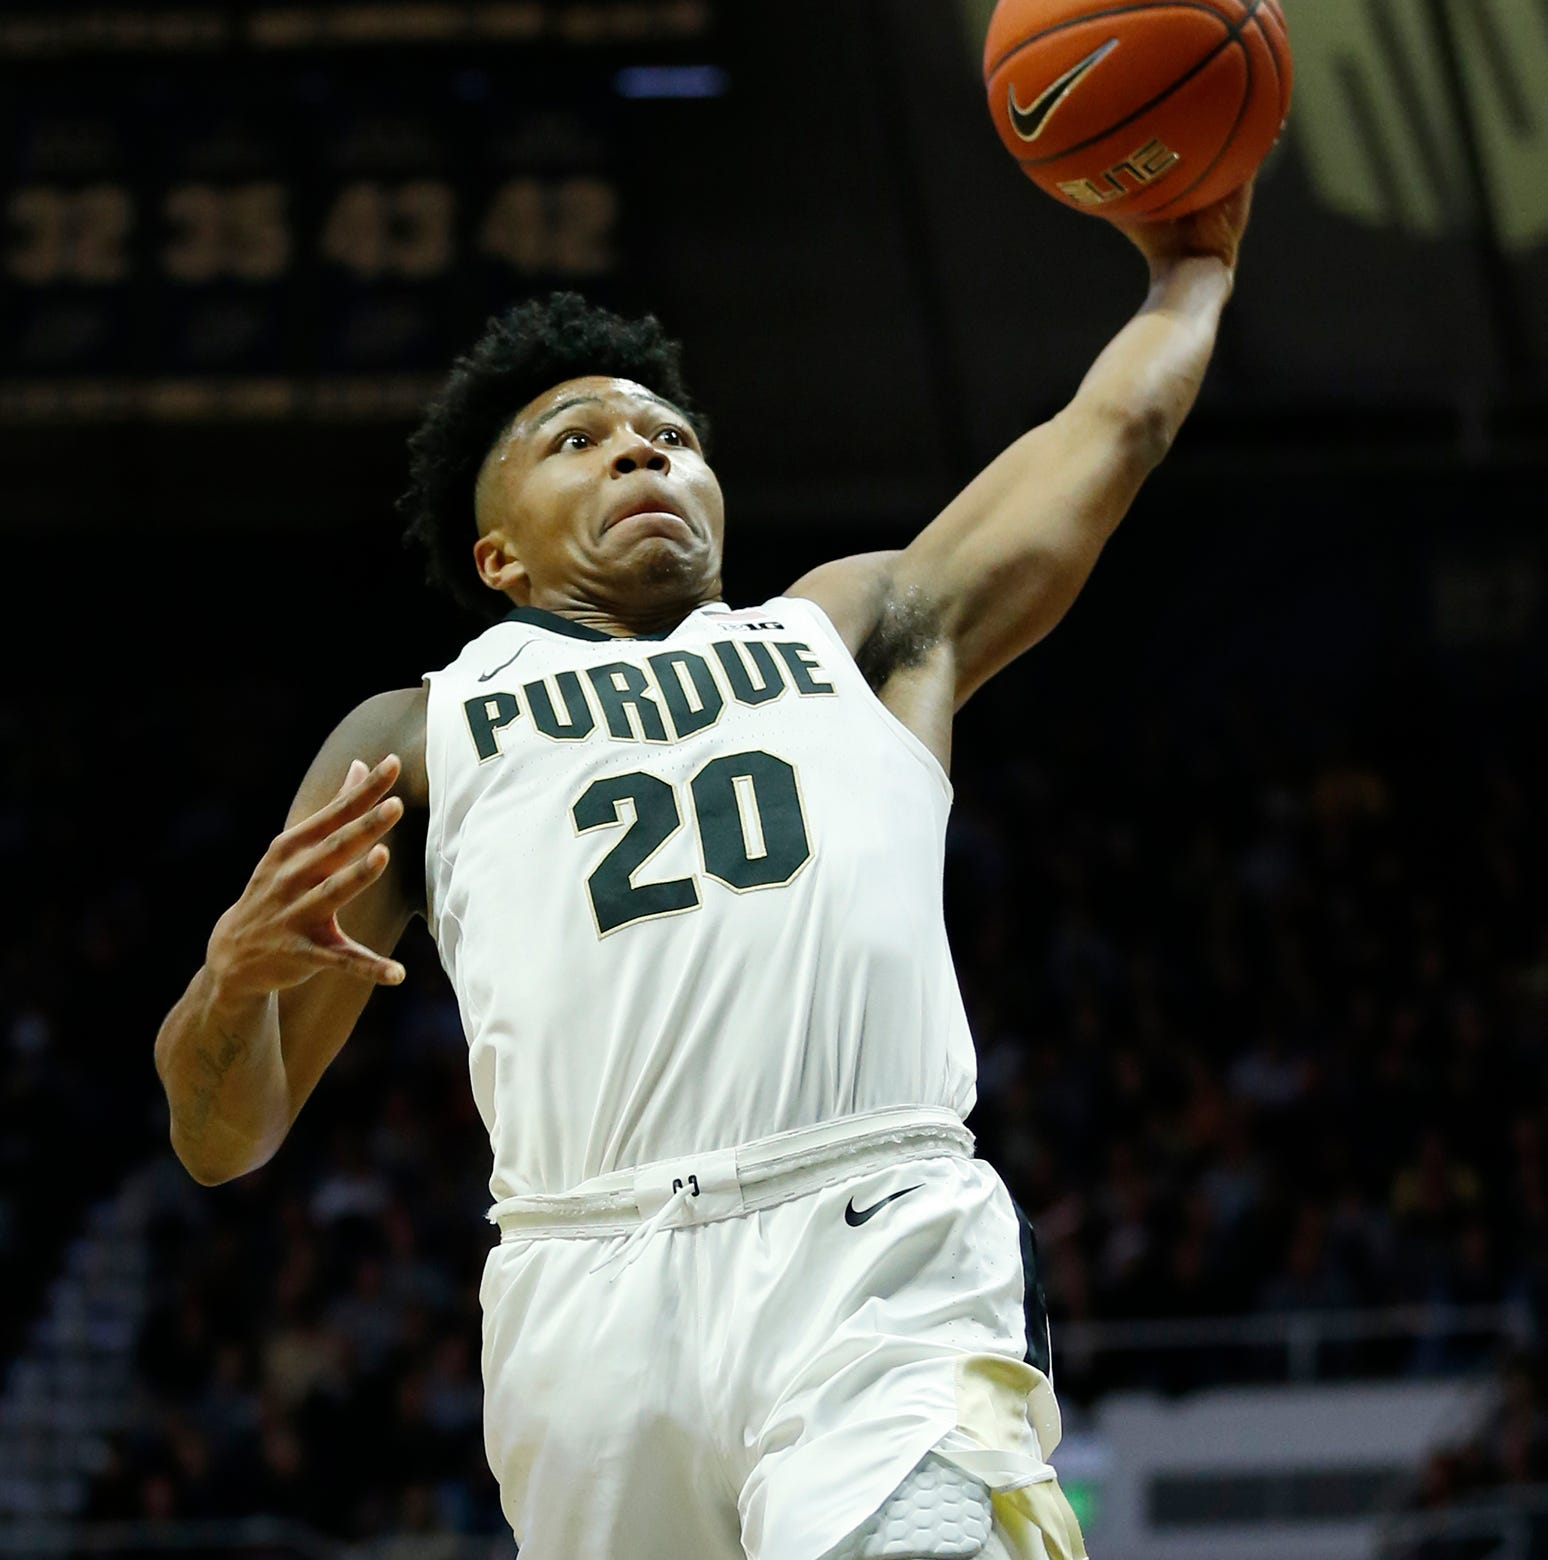 Purdue's unconventional, invaluable Nojel Eastern returns home with championship at stake